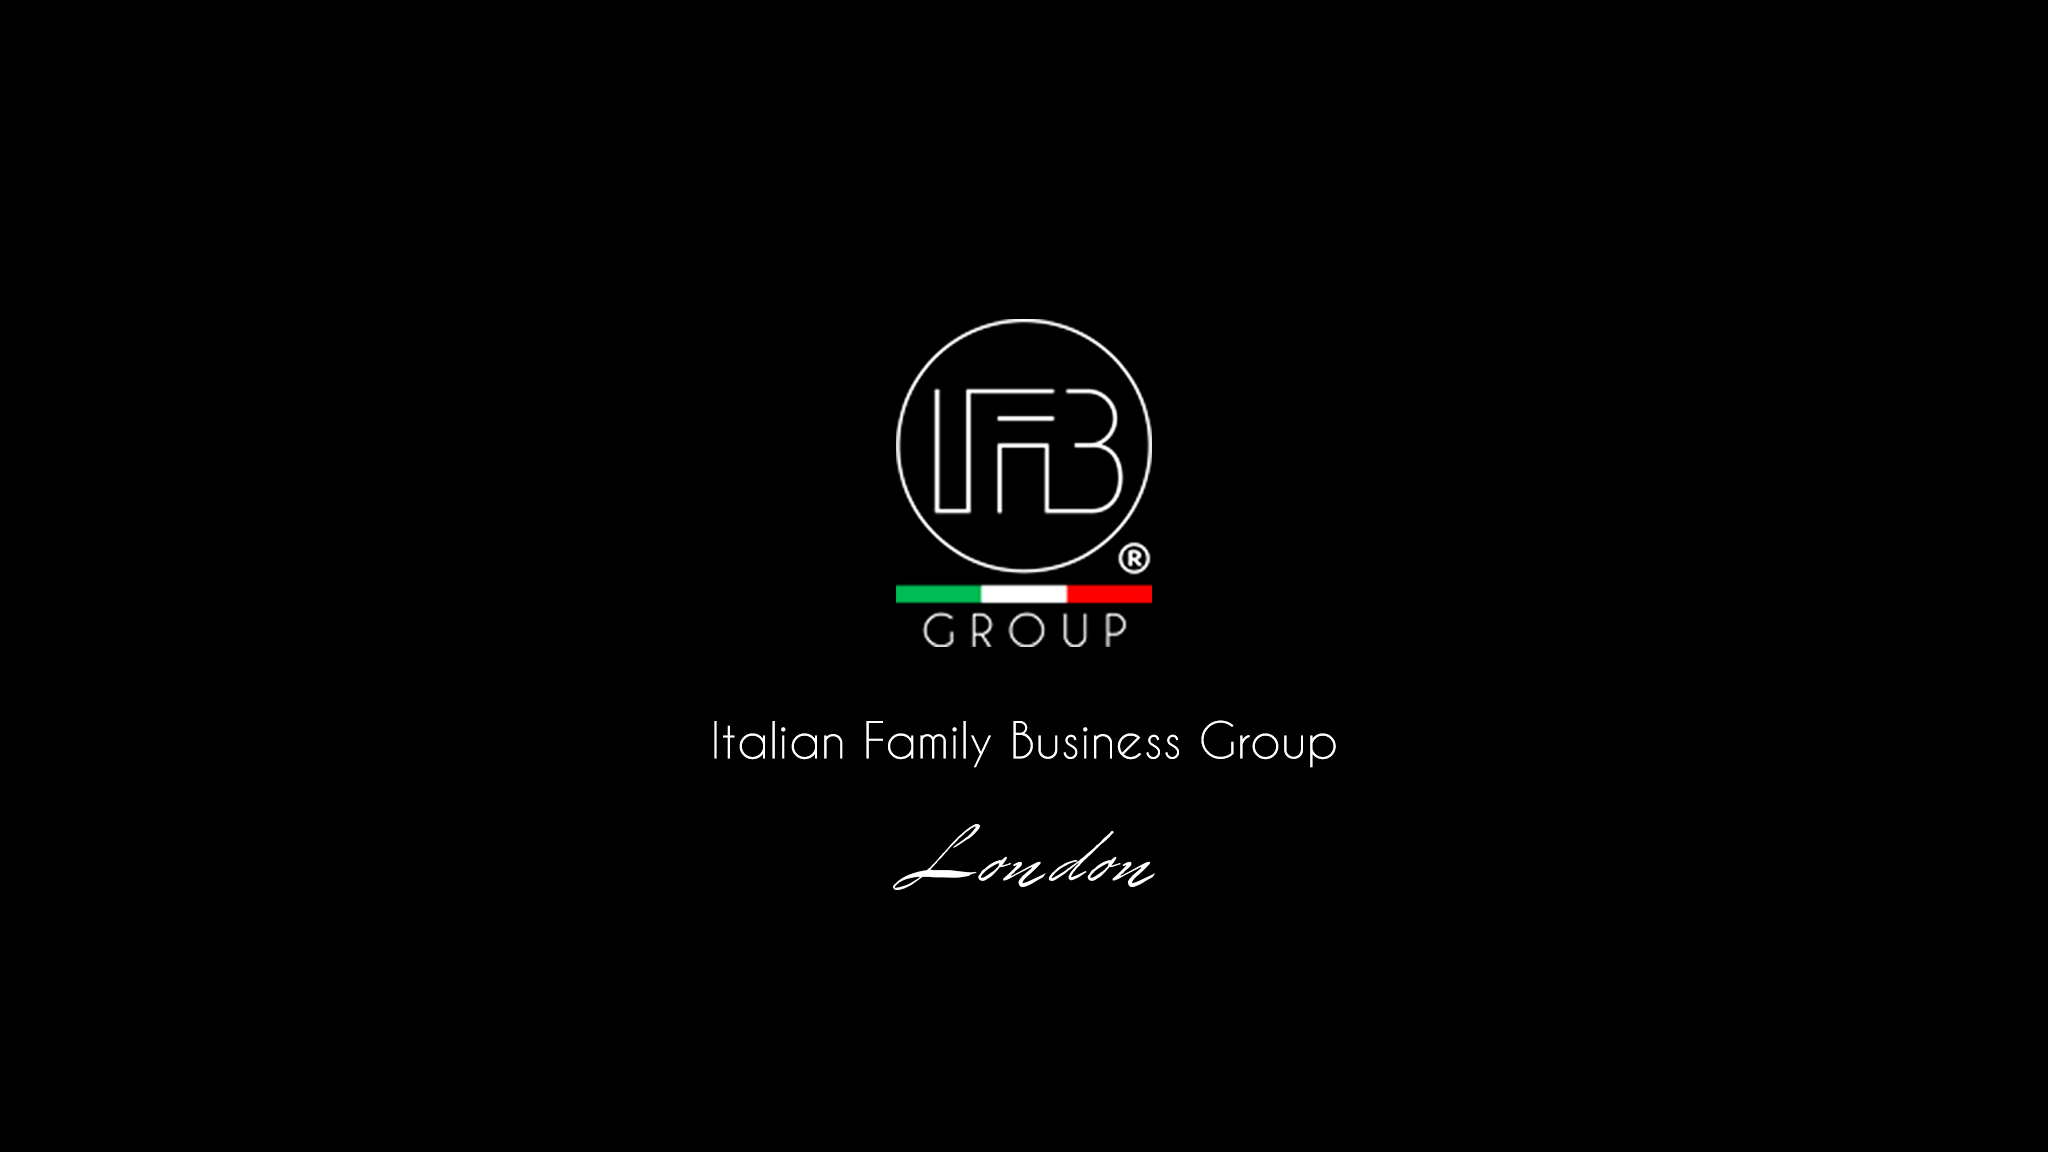 italian-family-business-group-london